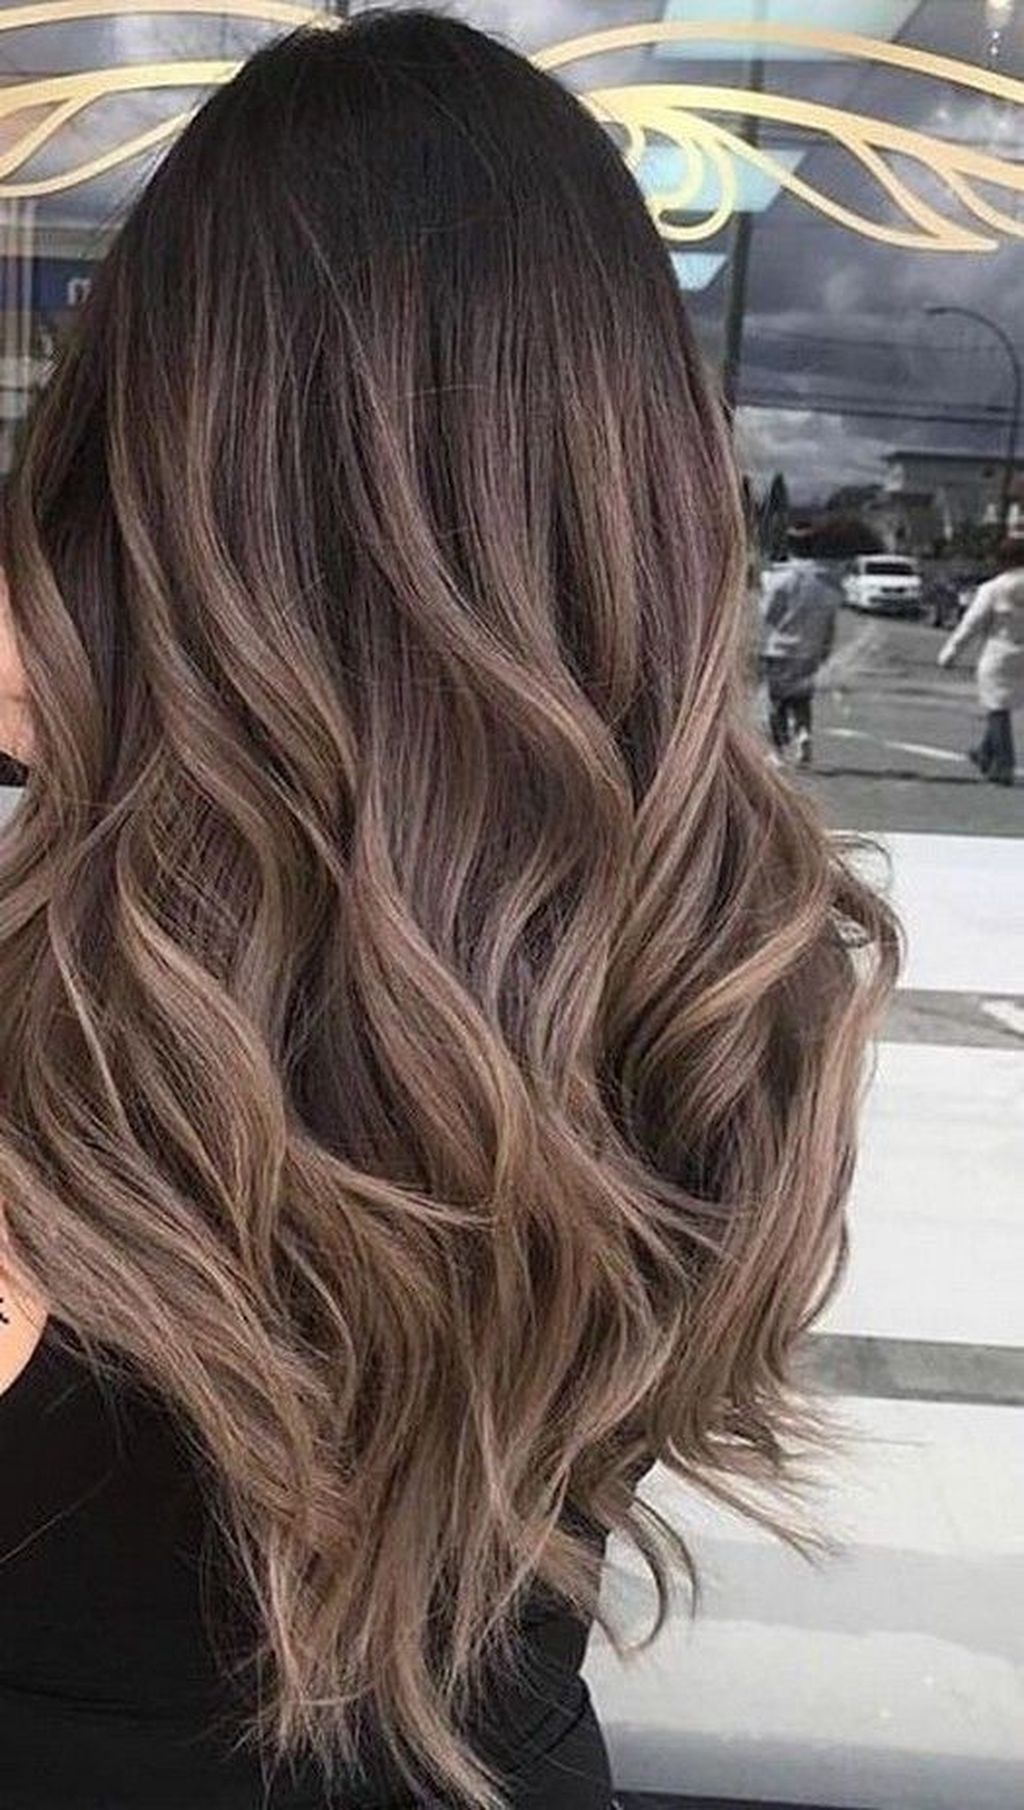 Icolorwrap Com Nbspthis Website Is For Sale Nbspicolorwrap Resources And Information In 2020 Brown Hair Balayage Hair Styles Brown Ombre Hair